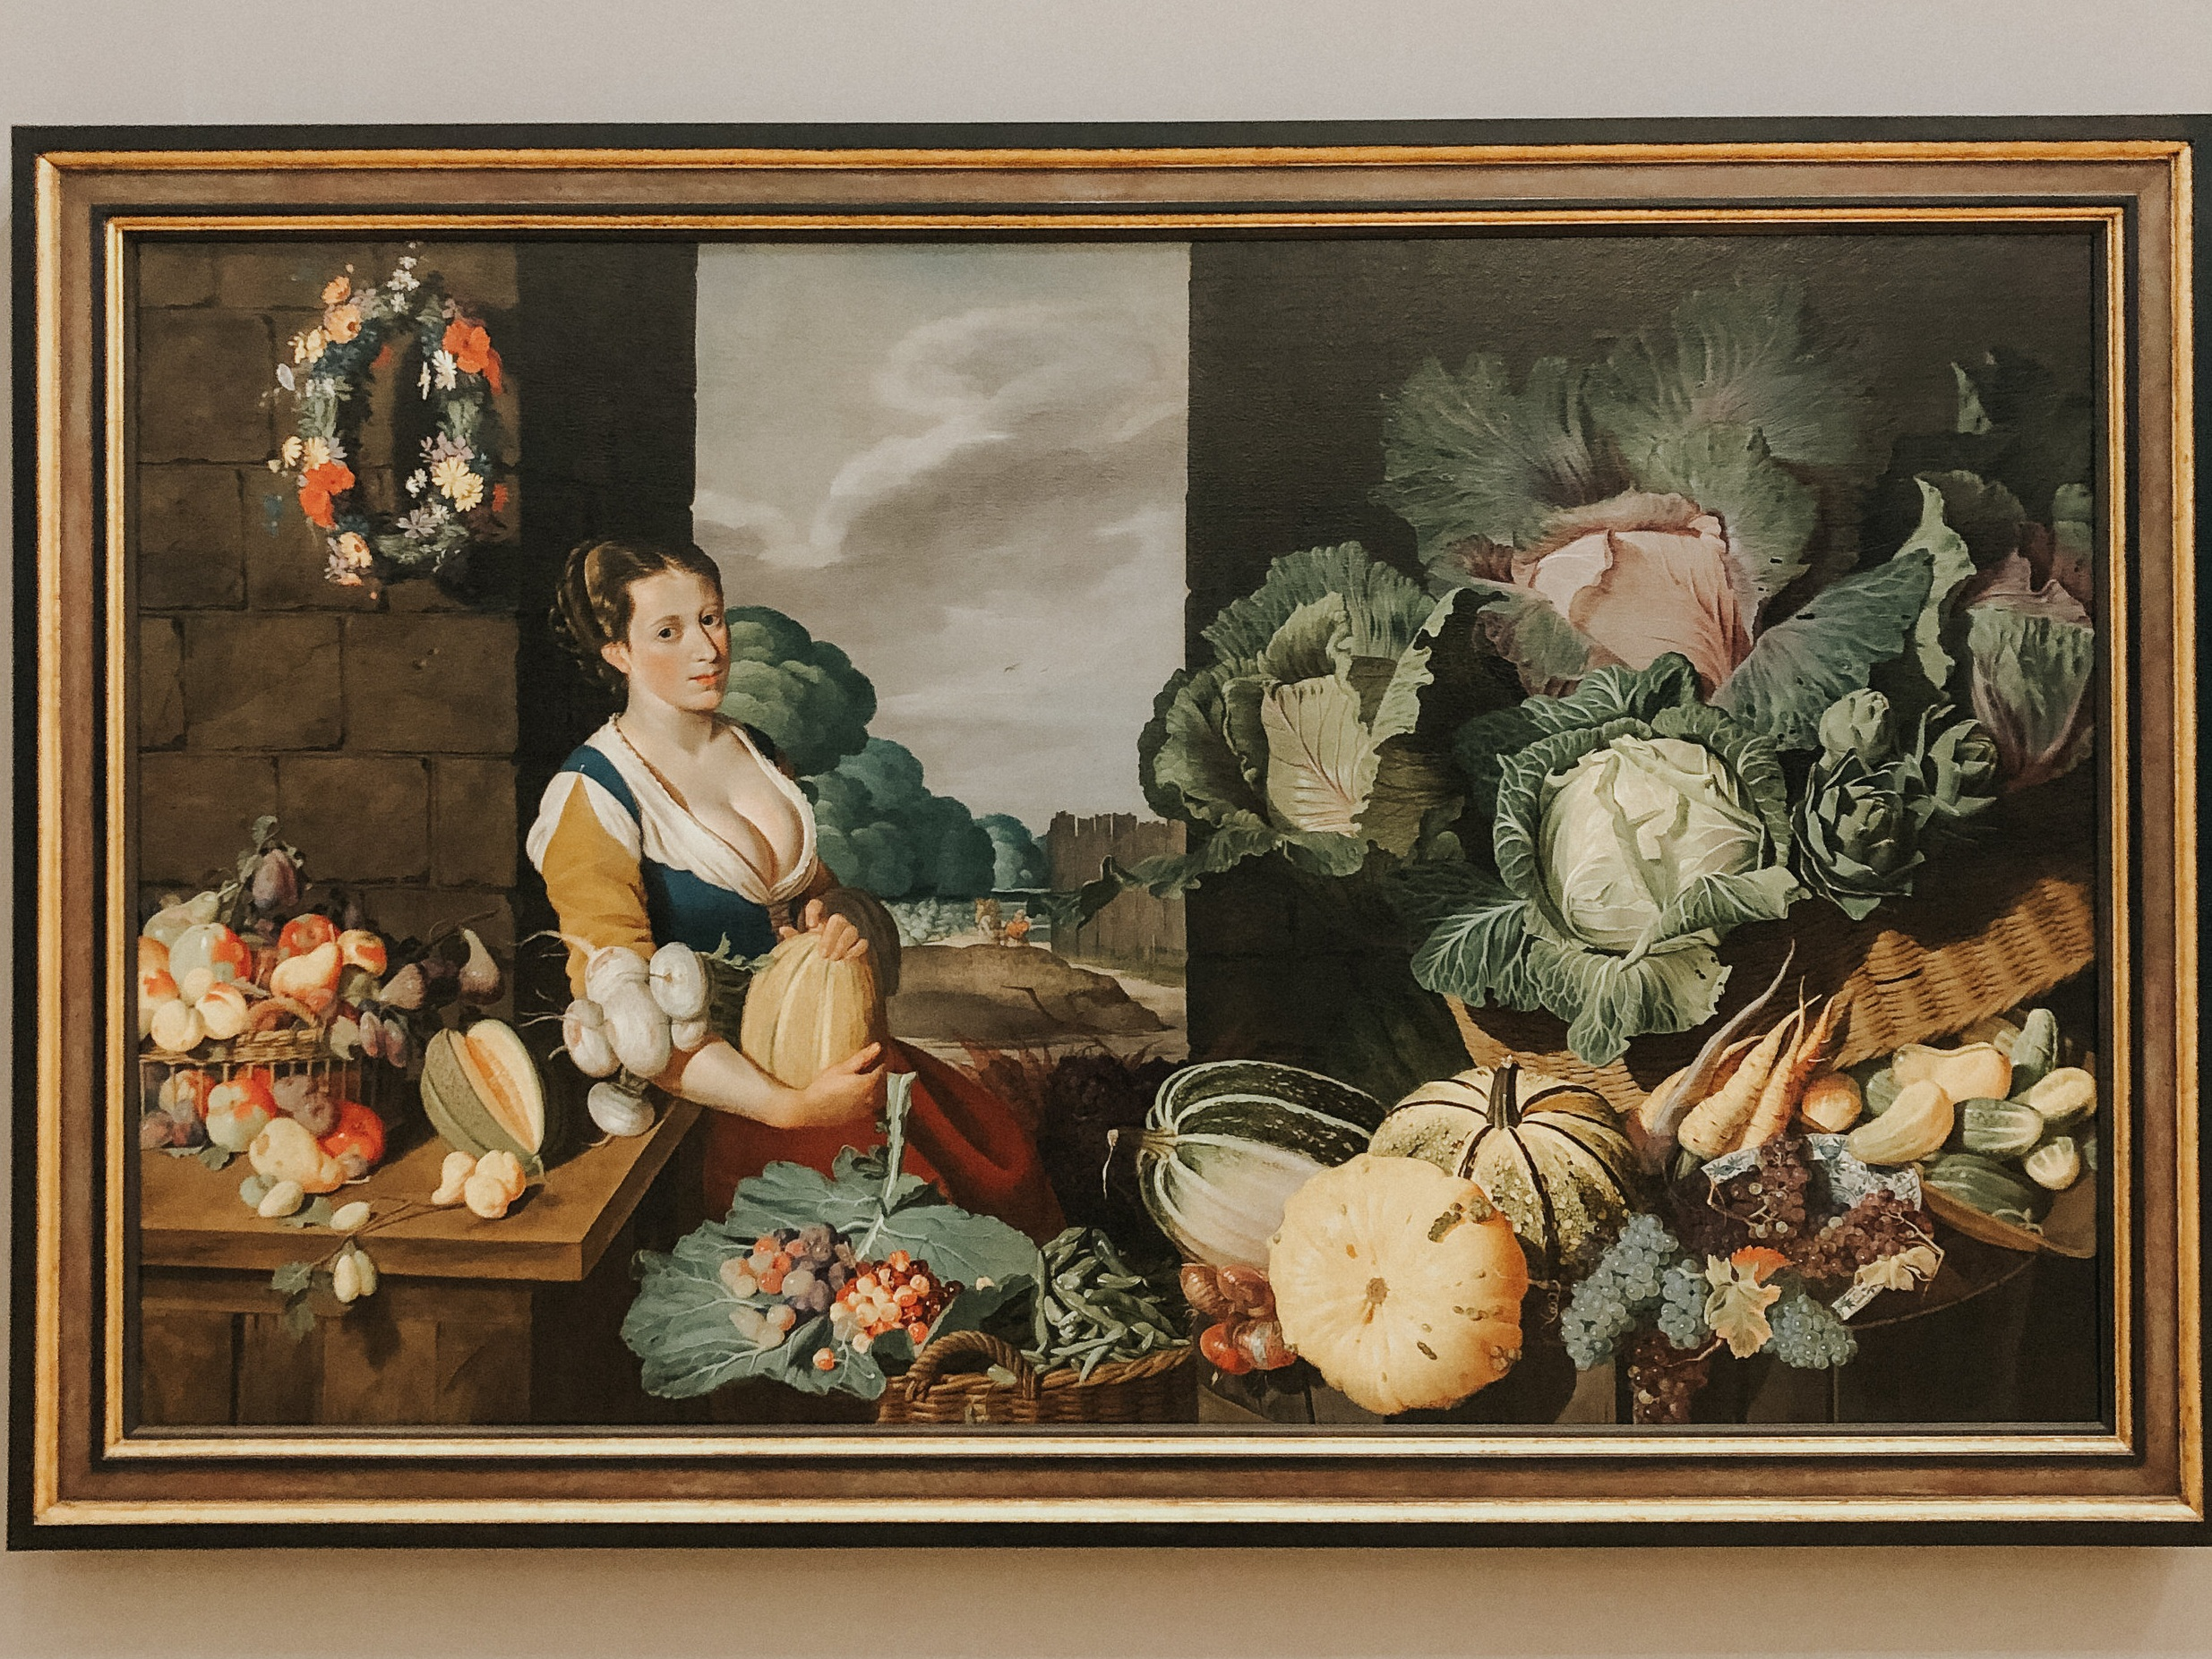 Cookmaid with Still Life of Fruits and Vegetables by Sir Nathaniel Bacon. I haven't stopped thinking about this painting.